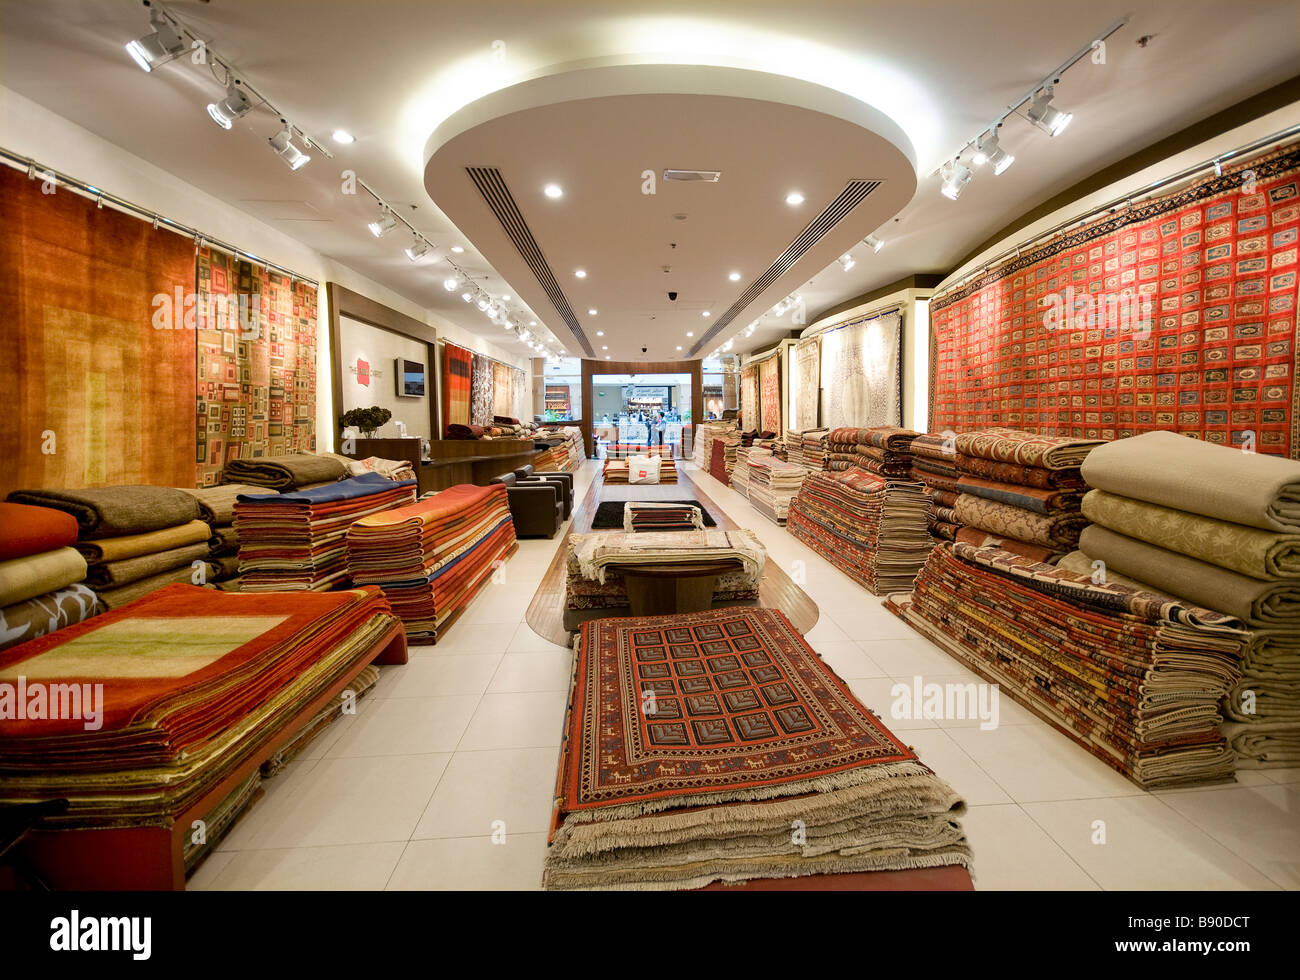 Carpet Store Stock Photos   Carpet Store Stock Images   Alamy rug and carpet store  shopping mall  dubai  uae   Stock Image